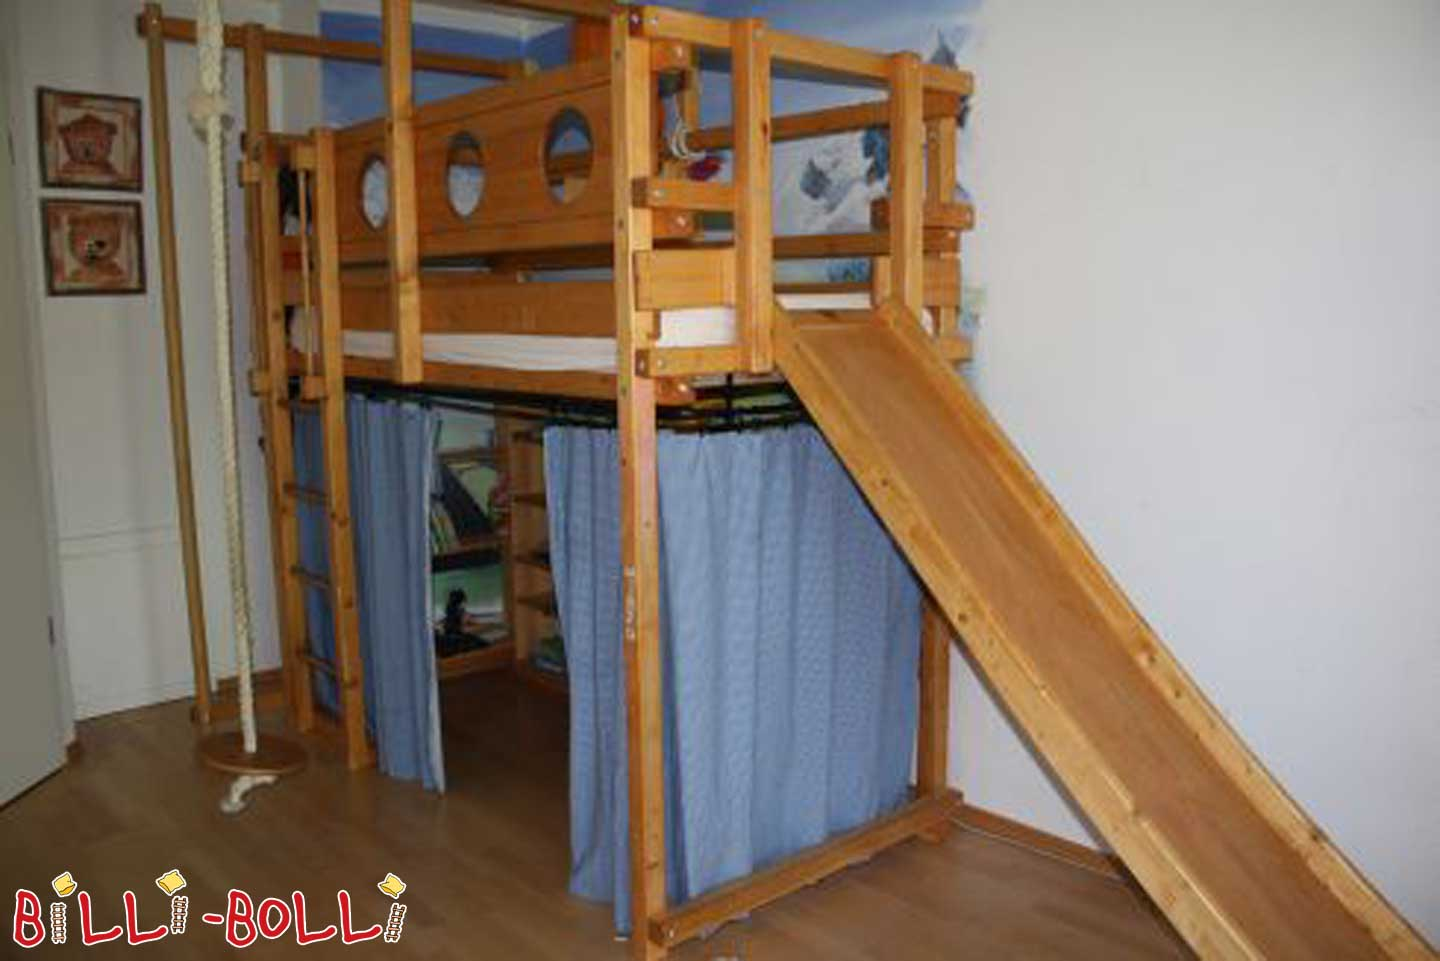 Billi-Bolli Pirate Bed (second hand loft bed)